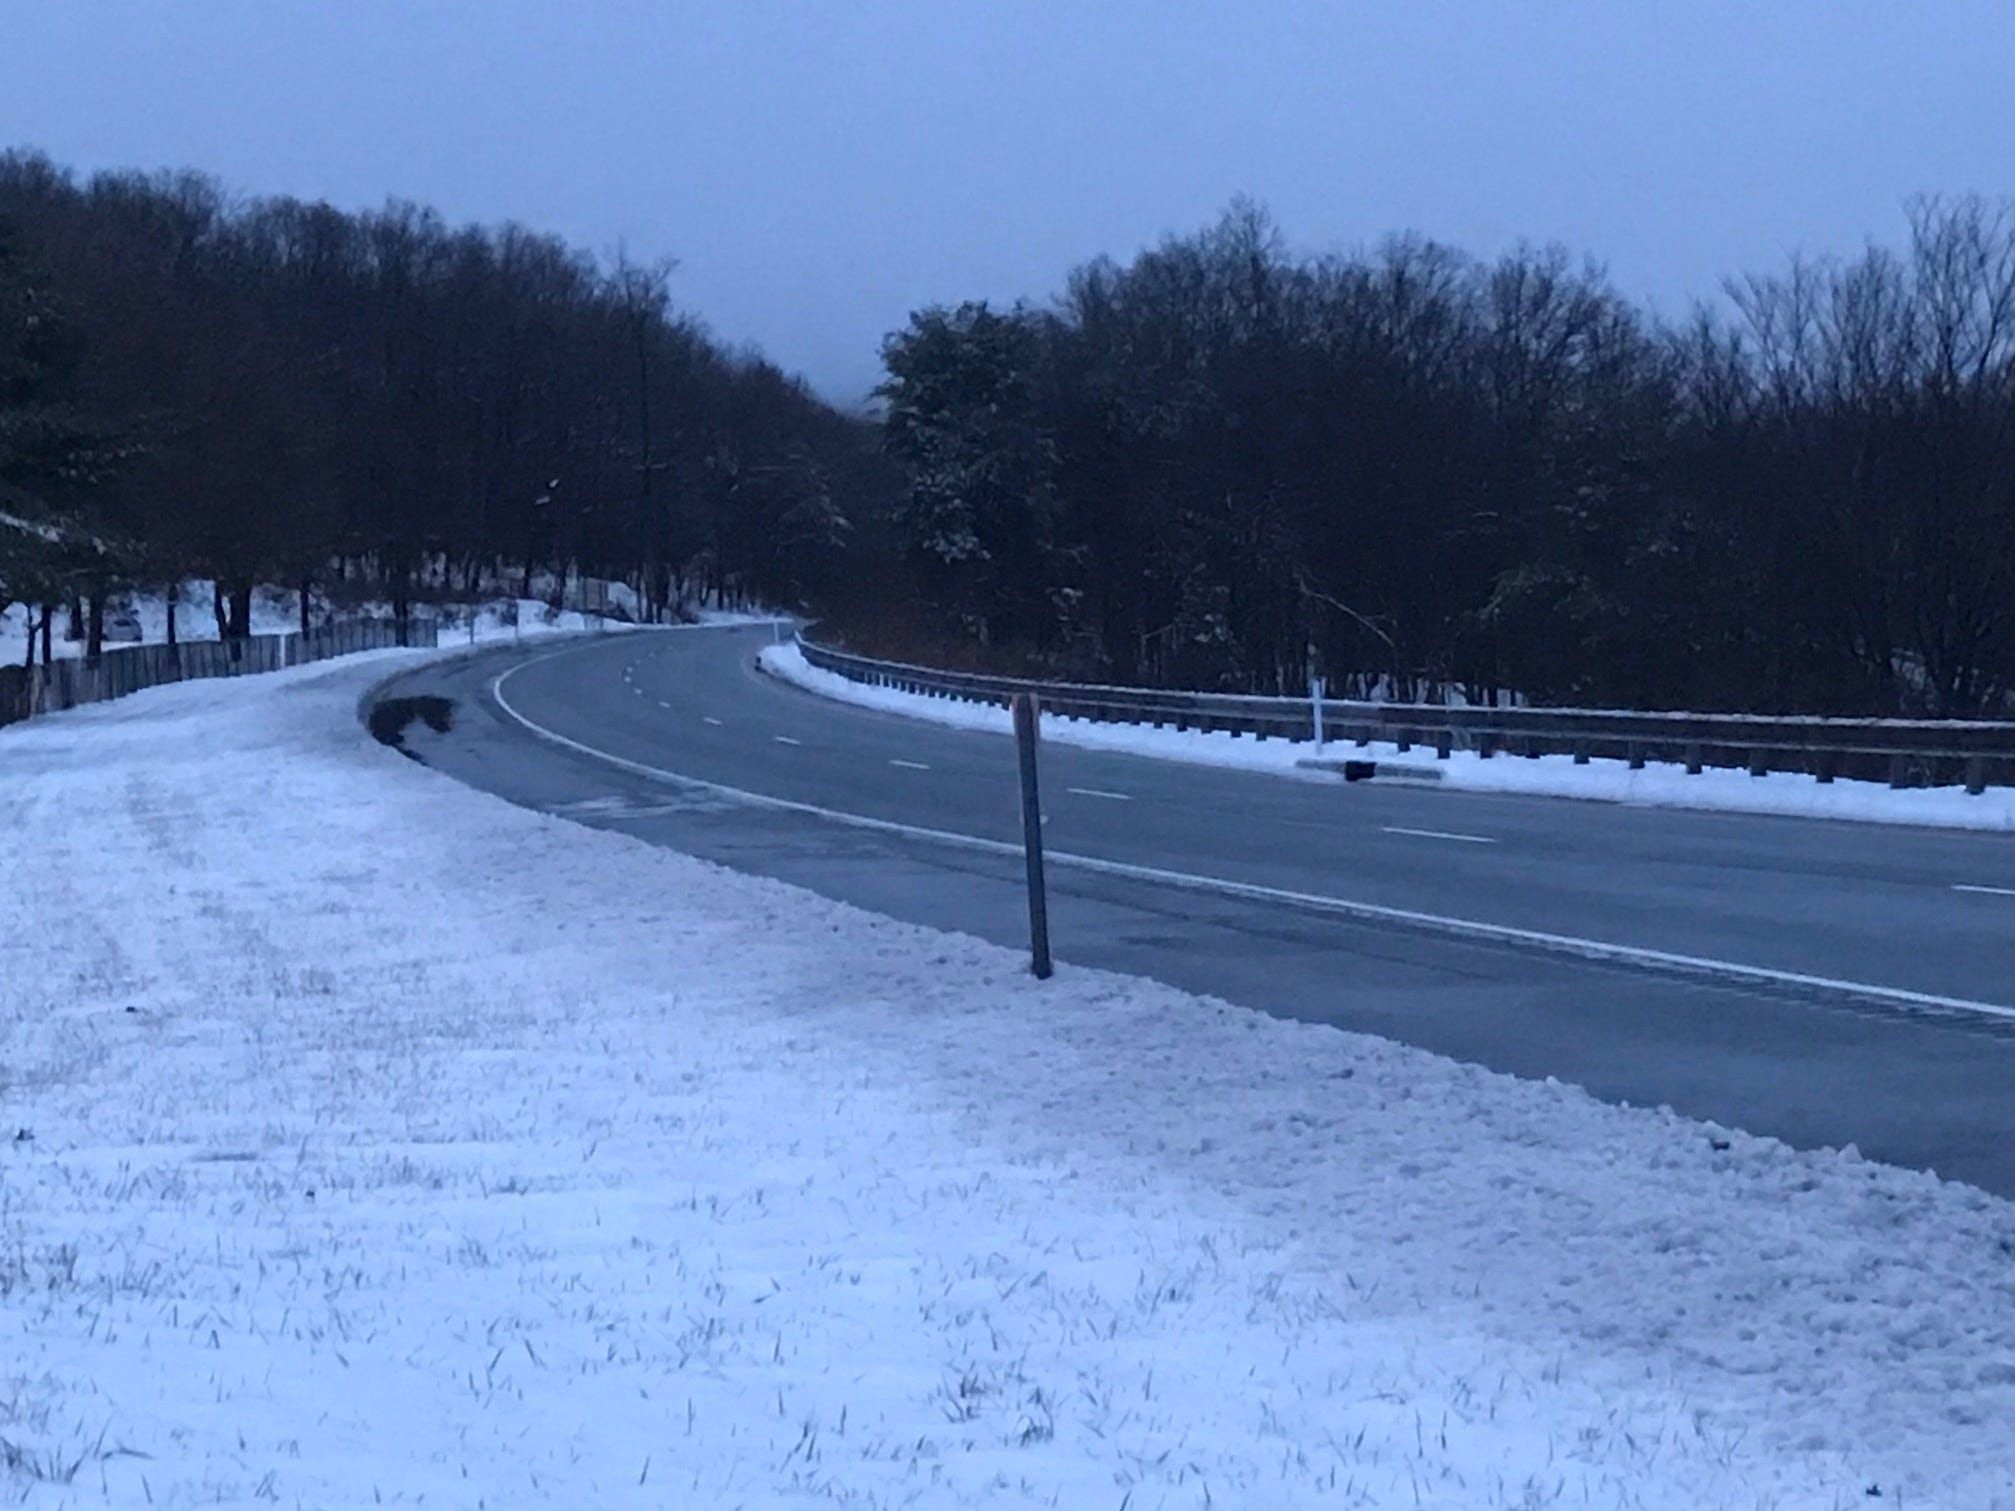 Route 23 in West Milford near Echo Lake Road at 7 a.m. Sunday, Jan. 20, 2019.